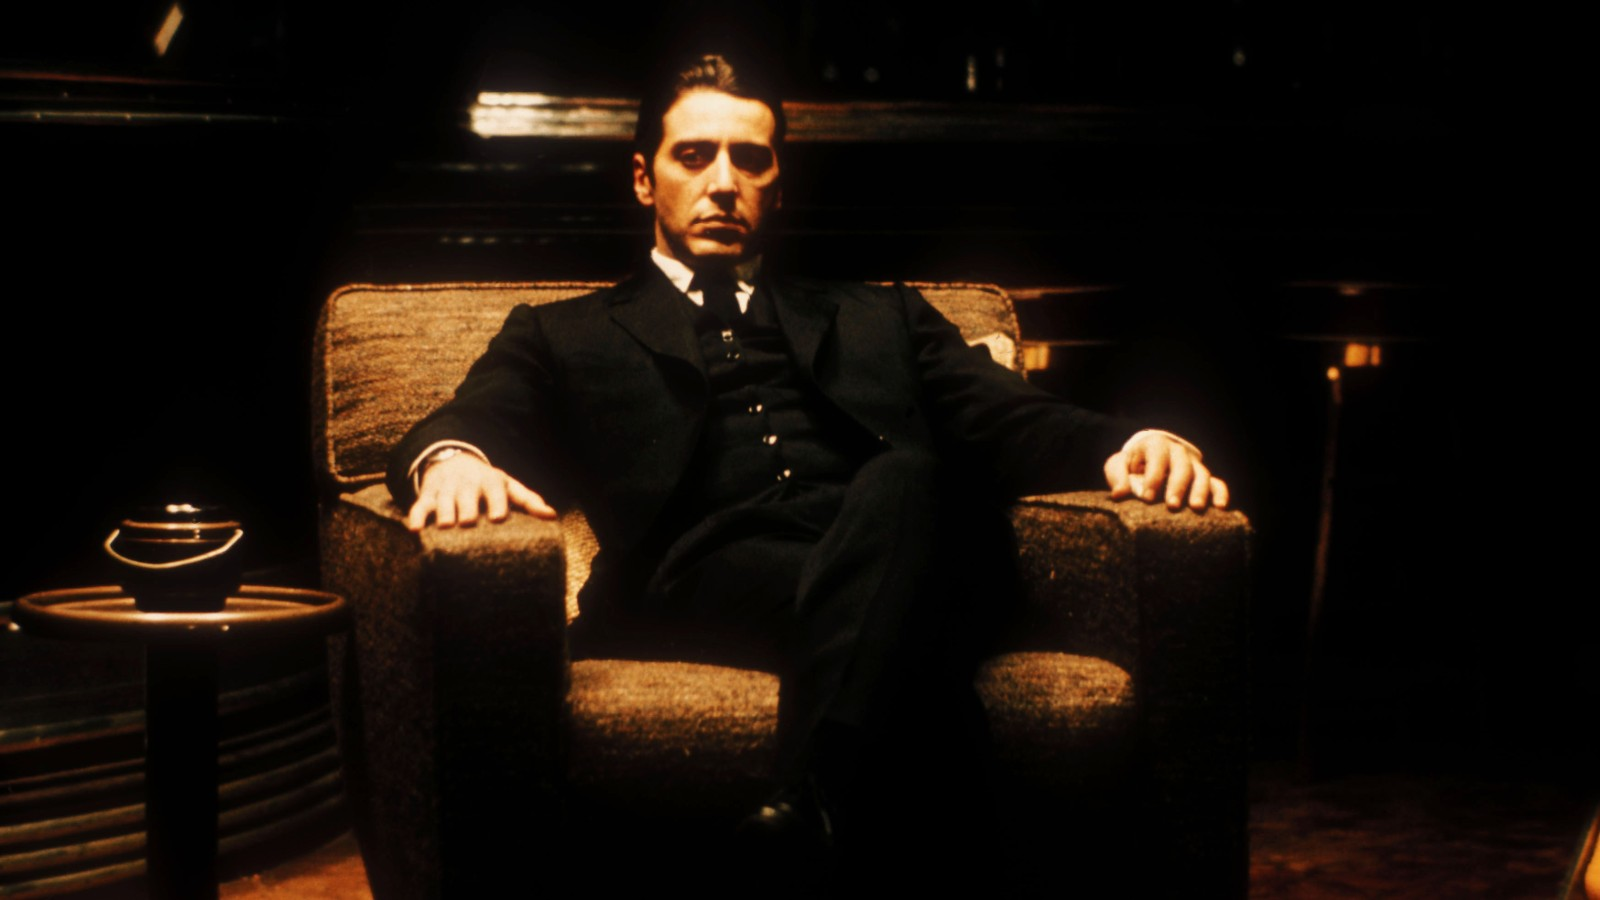 Michael Corleone in The Godfather II